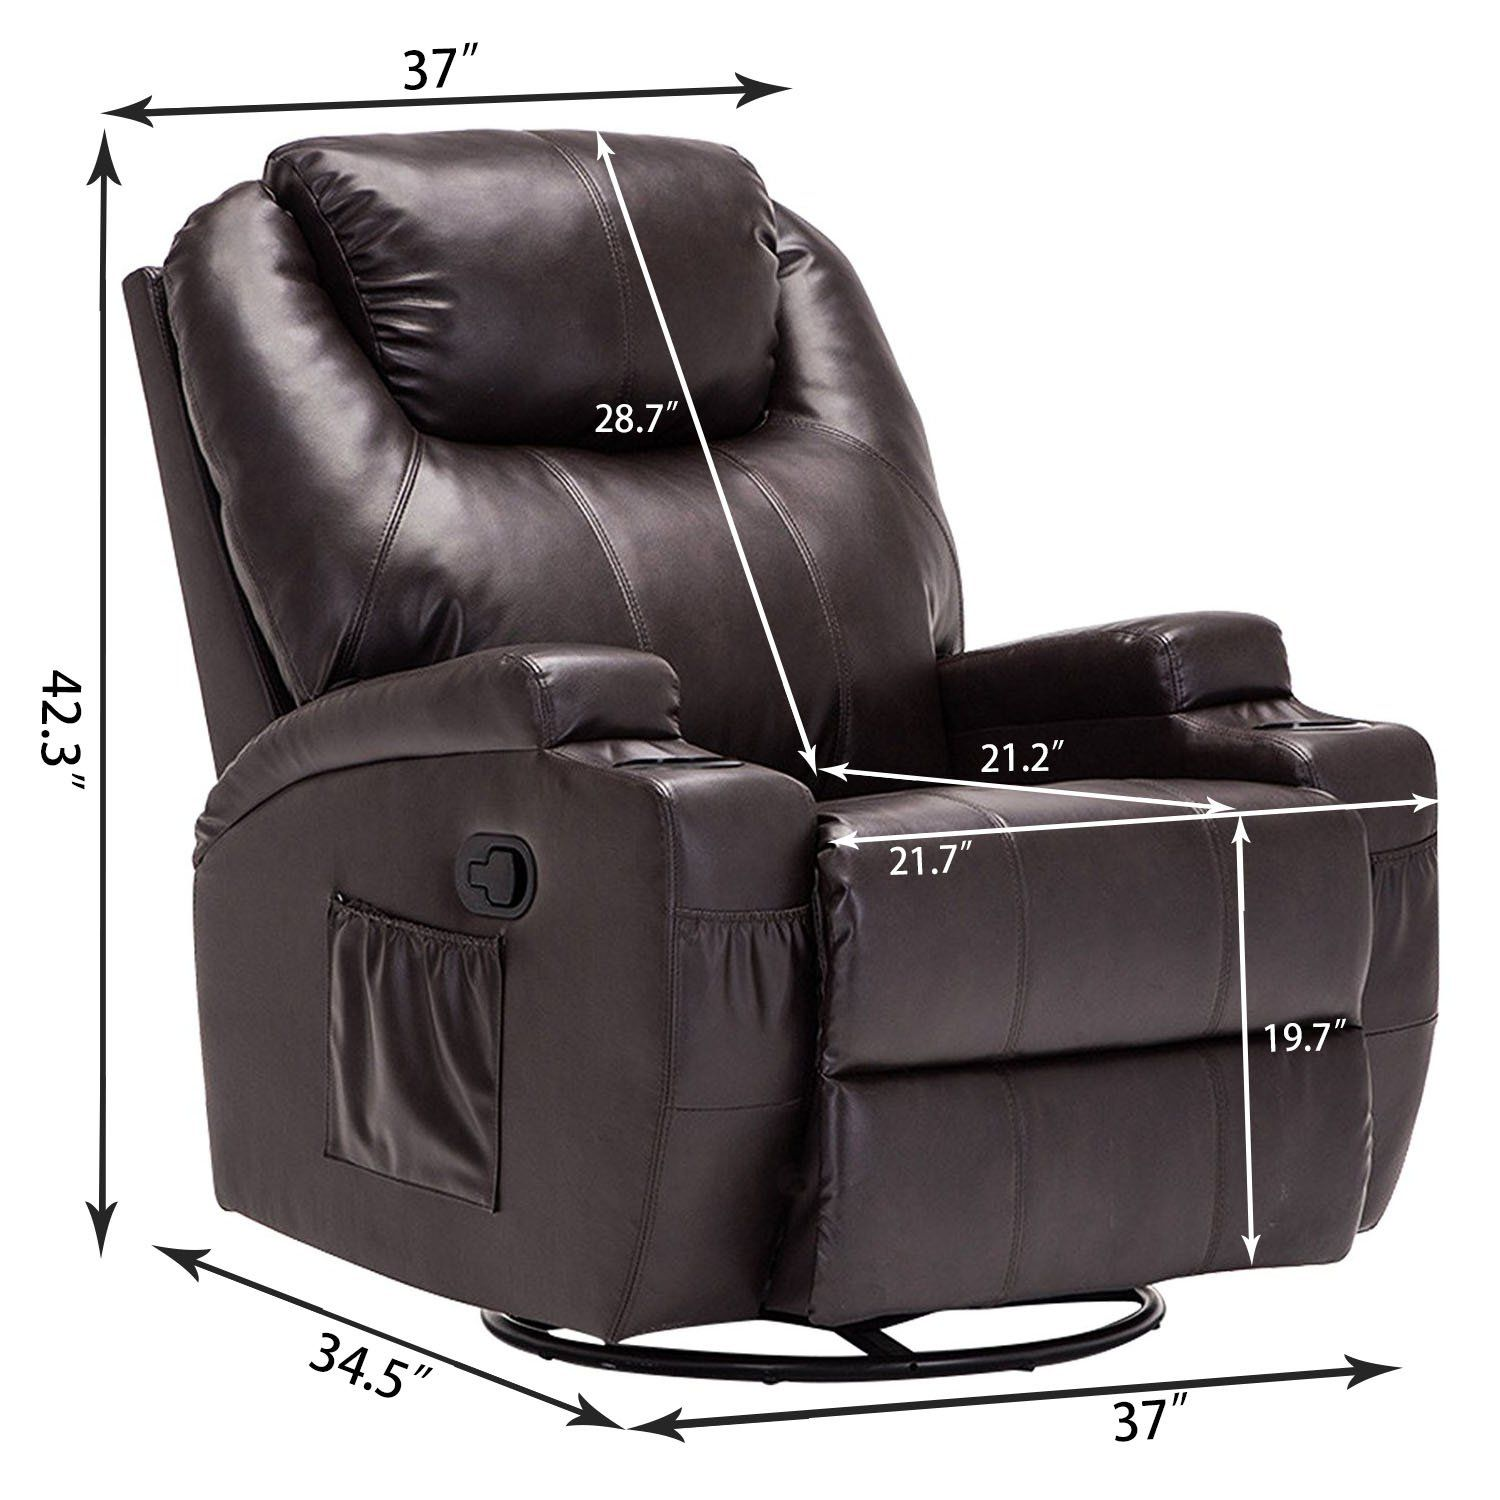 Cozime Luxury Reclining Leather Massage Chair Automatic Relax